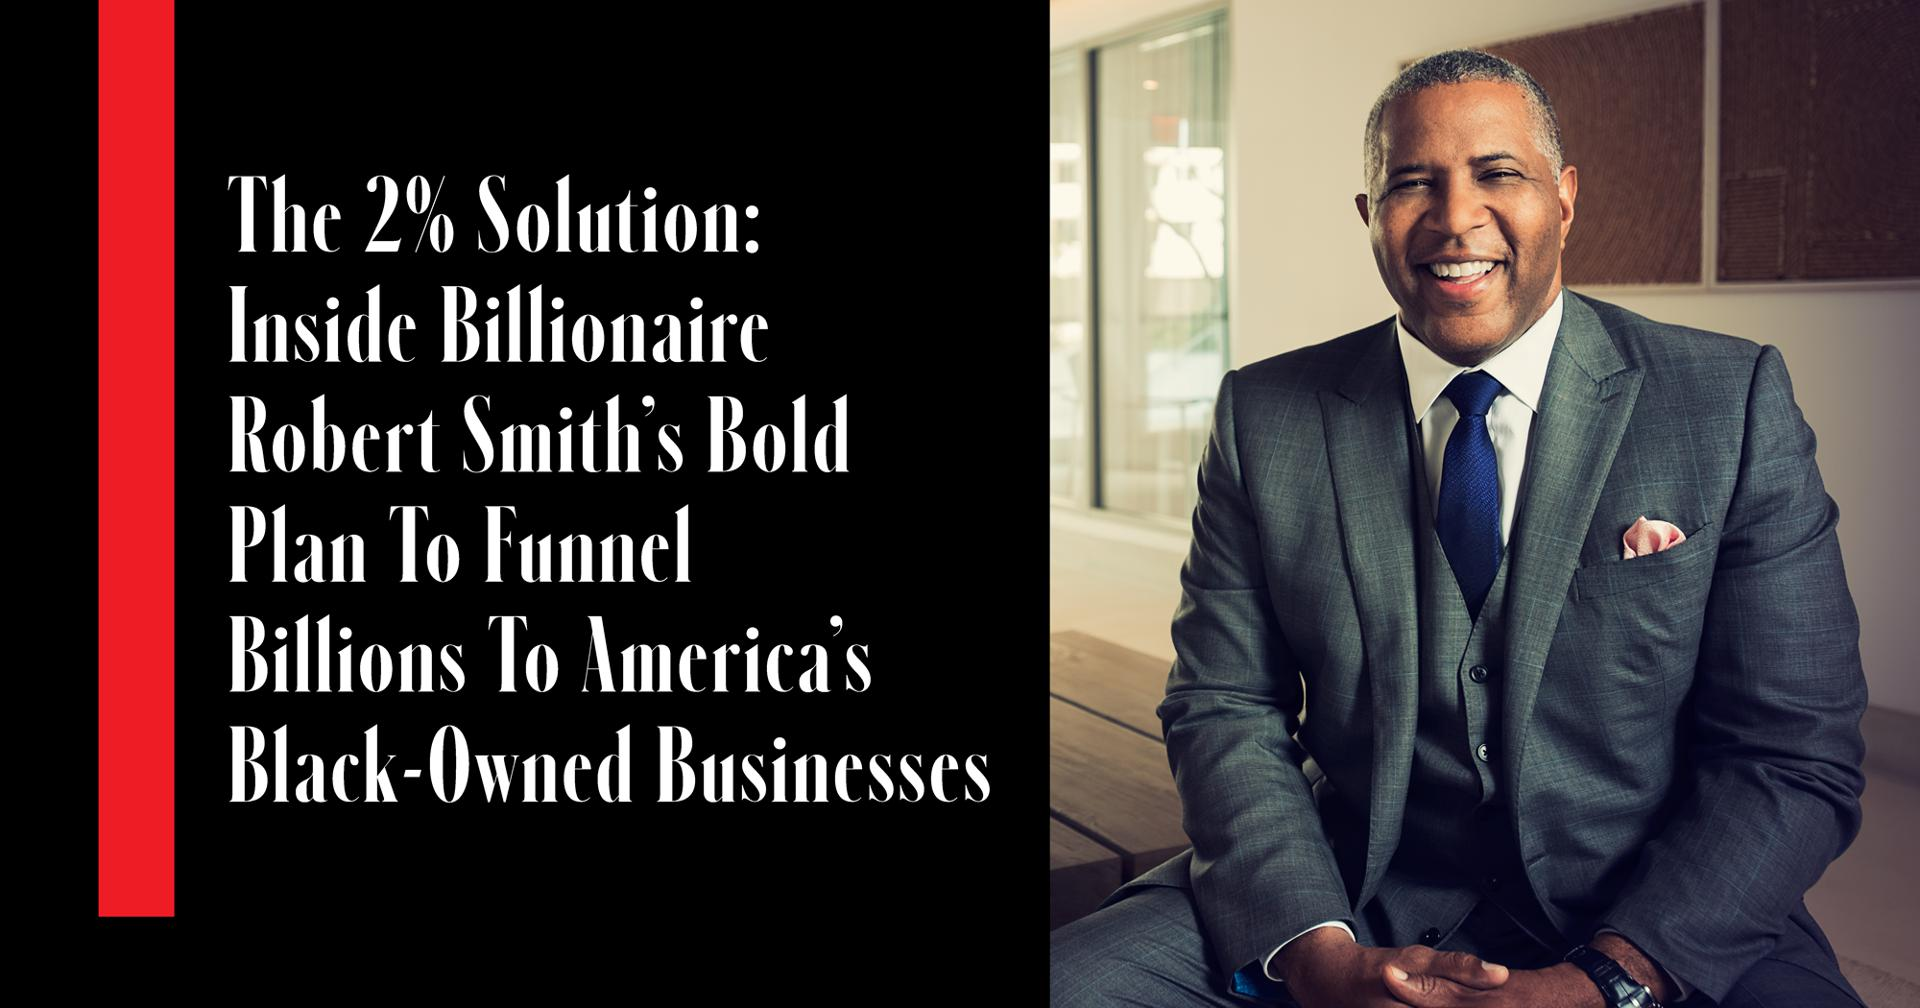 The 2% Solution: Inside Billionaire Robert Smith's Bold Plan To Funnel Billions To America's Black-Owned Businesses